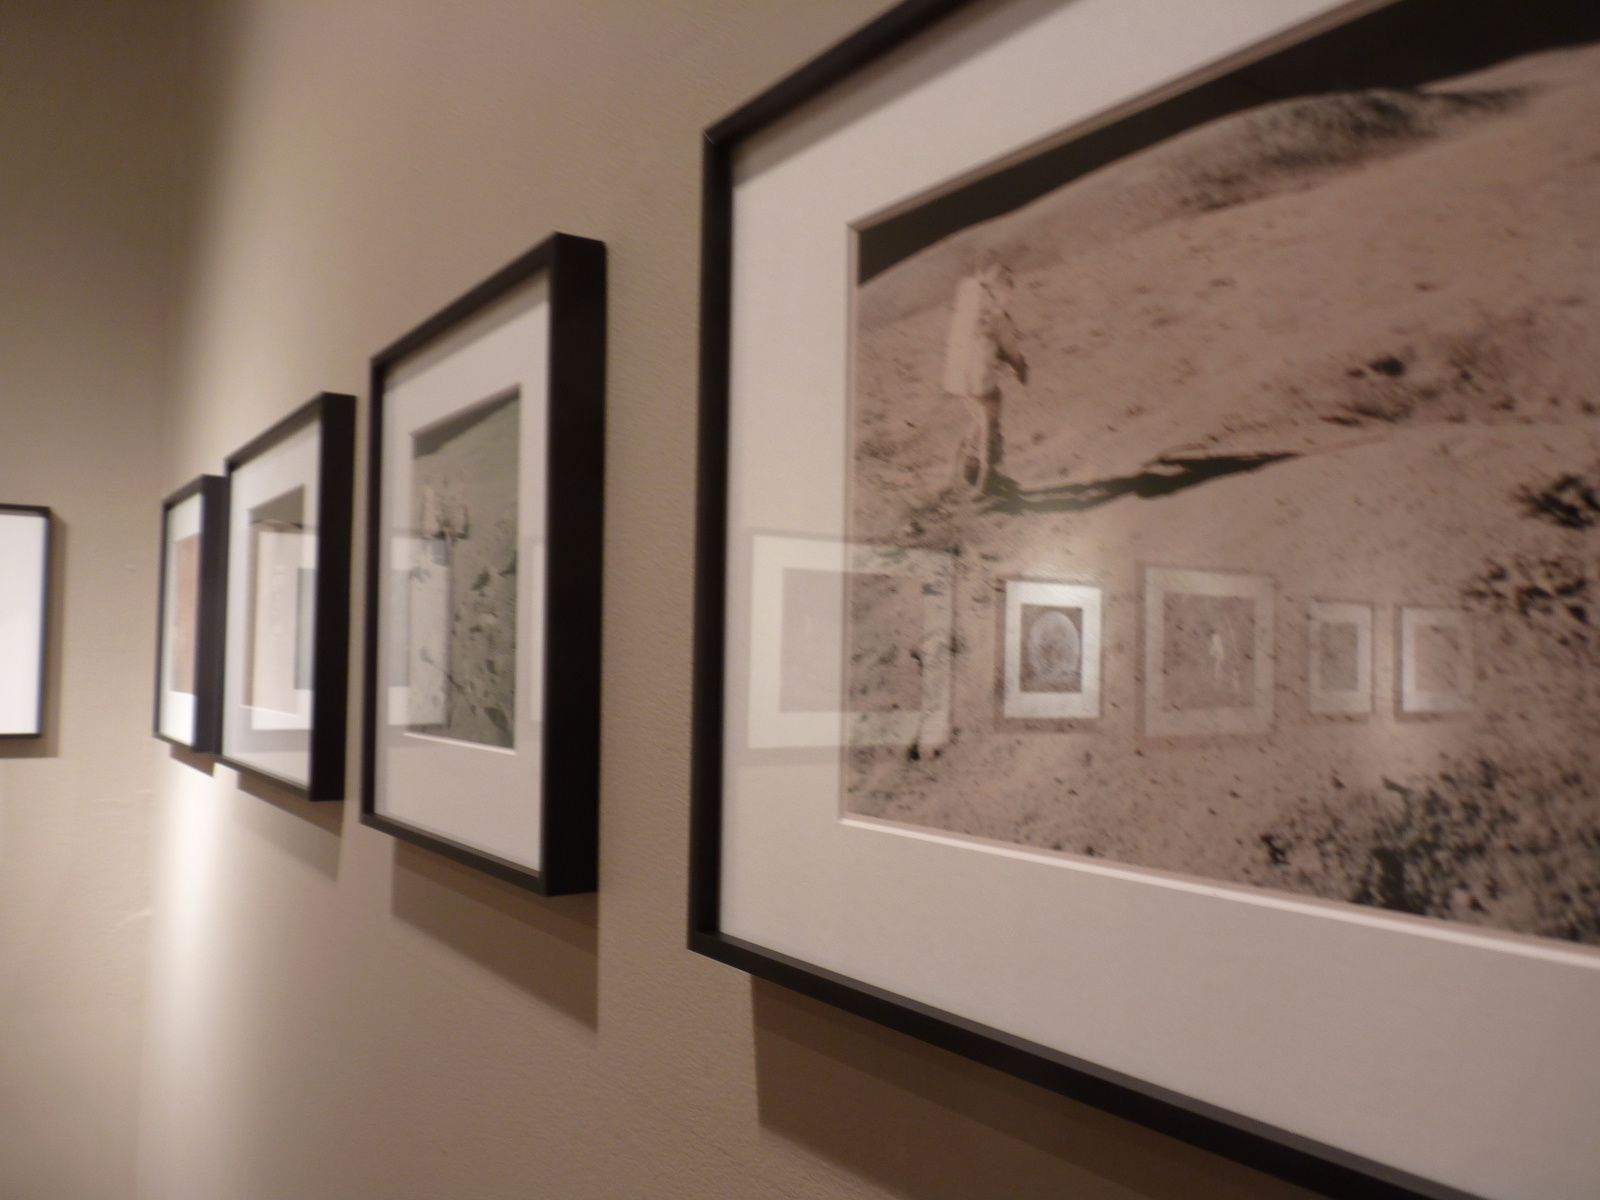 Expo collective Photographique: Magnificient Desolation